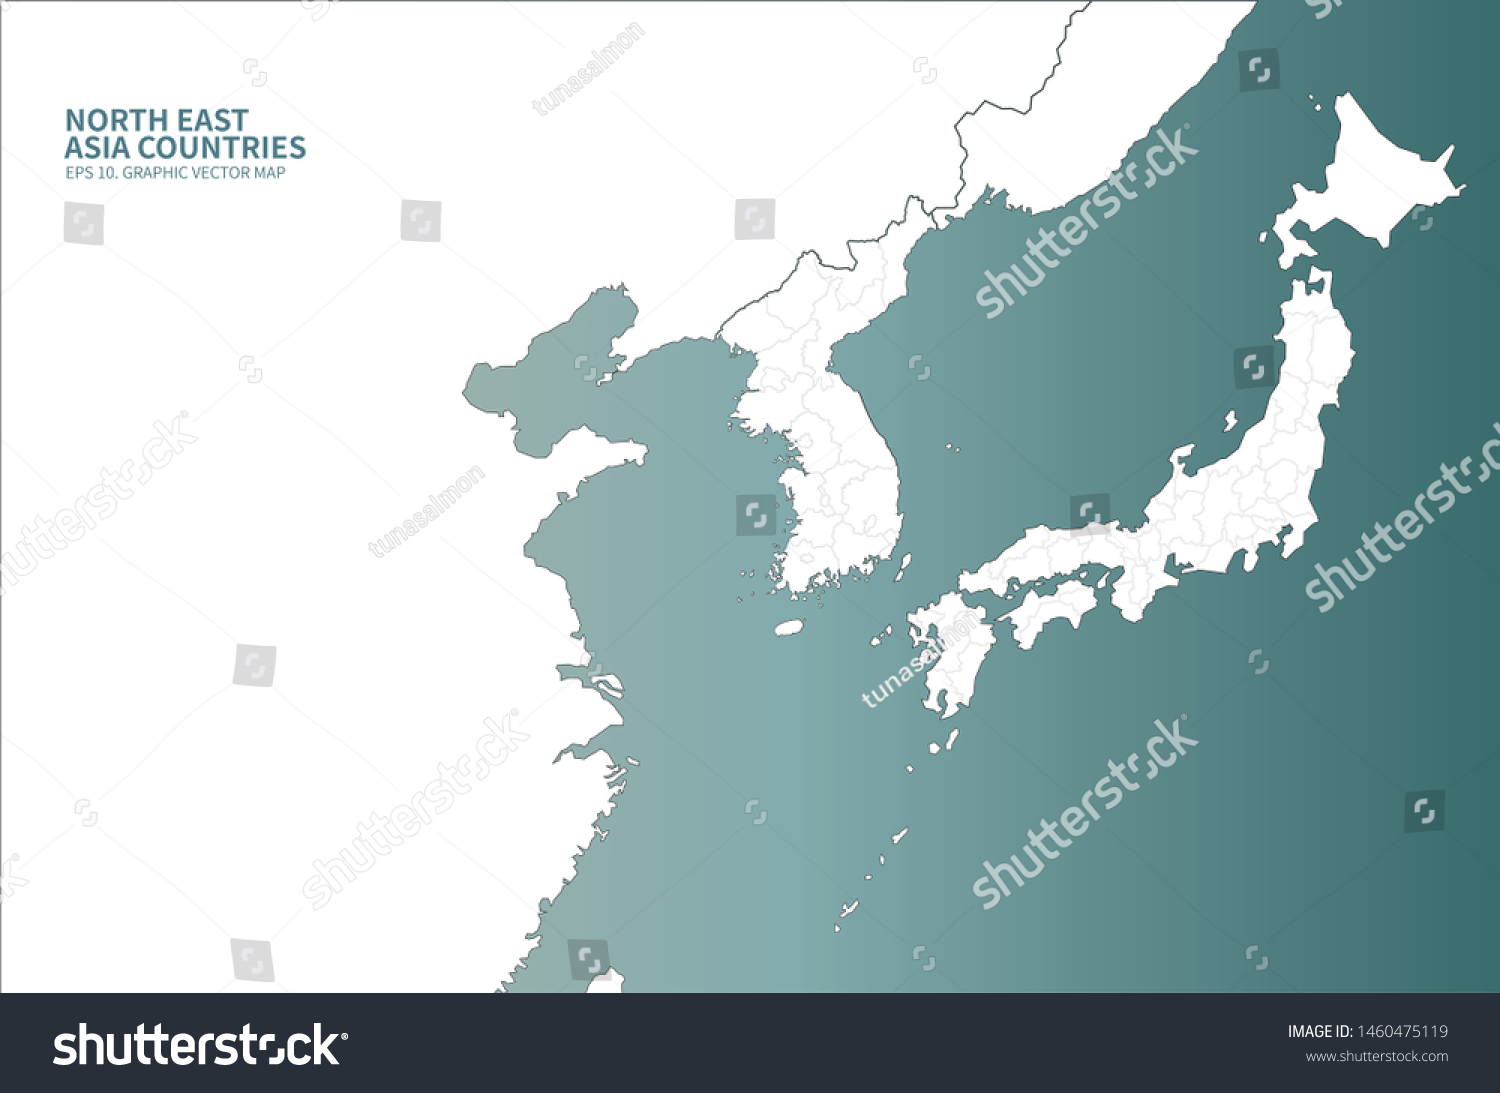 Graphic Vector East Sea Map Korea Stock Vector Royalty Free 1460475119